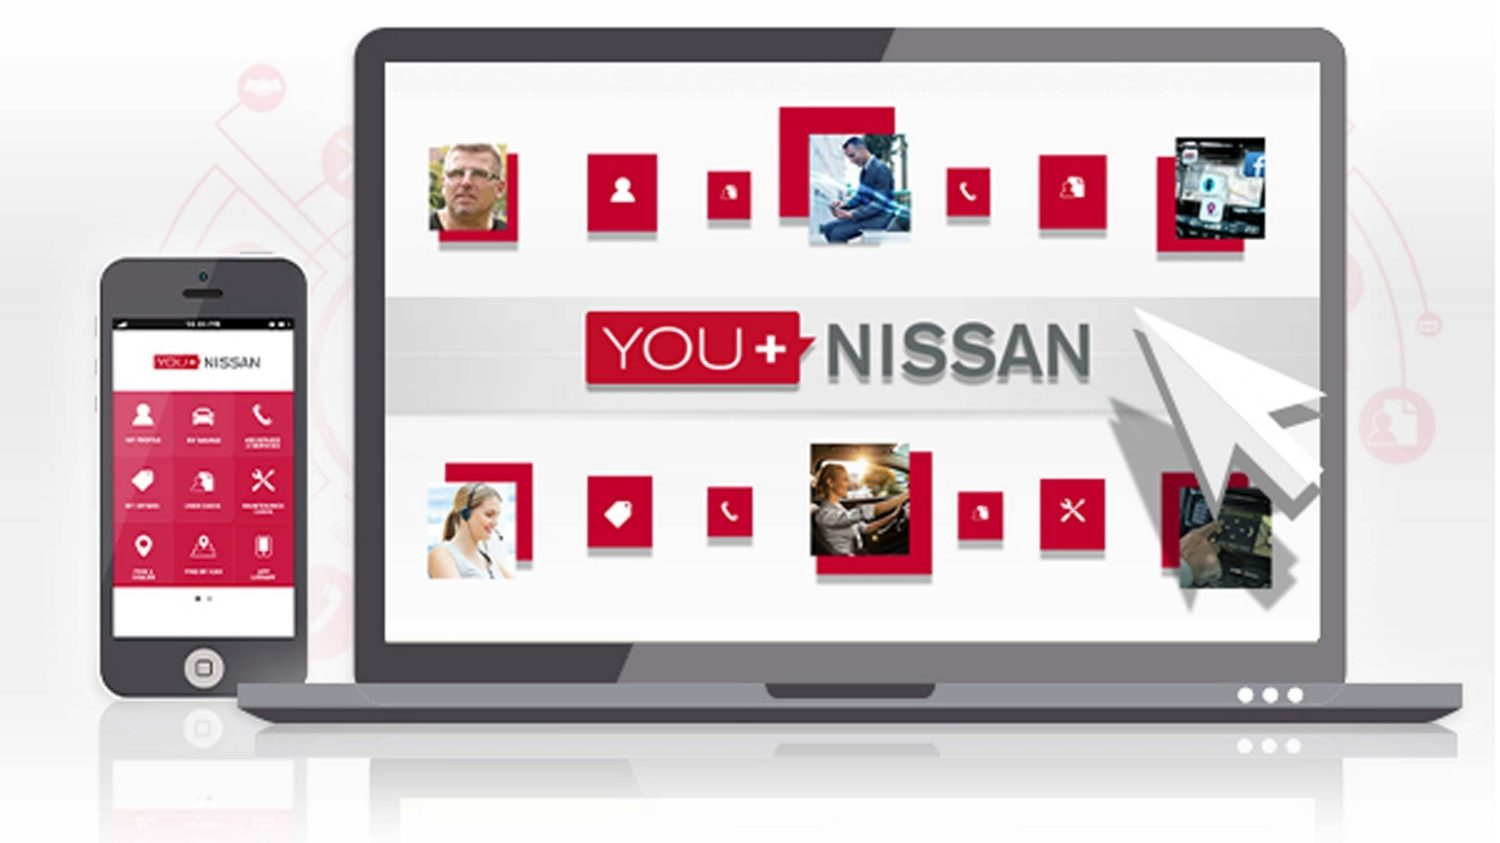 Nissan - You+Nissan - Personalised services